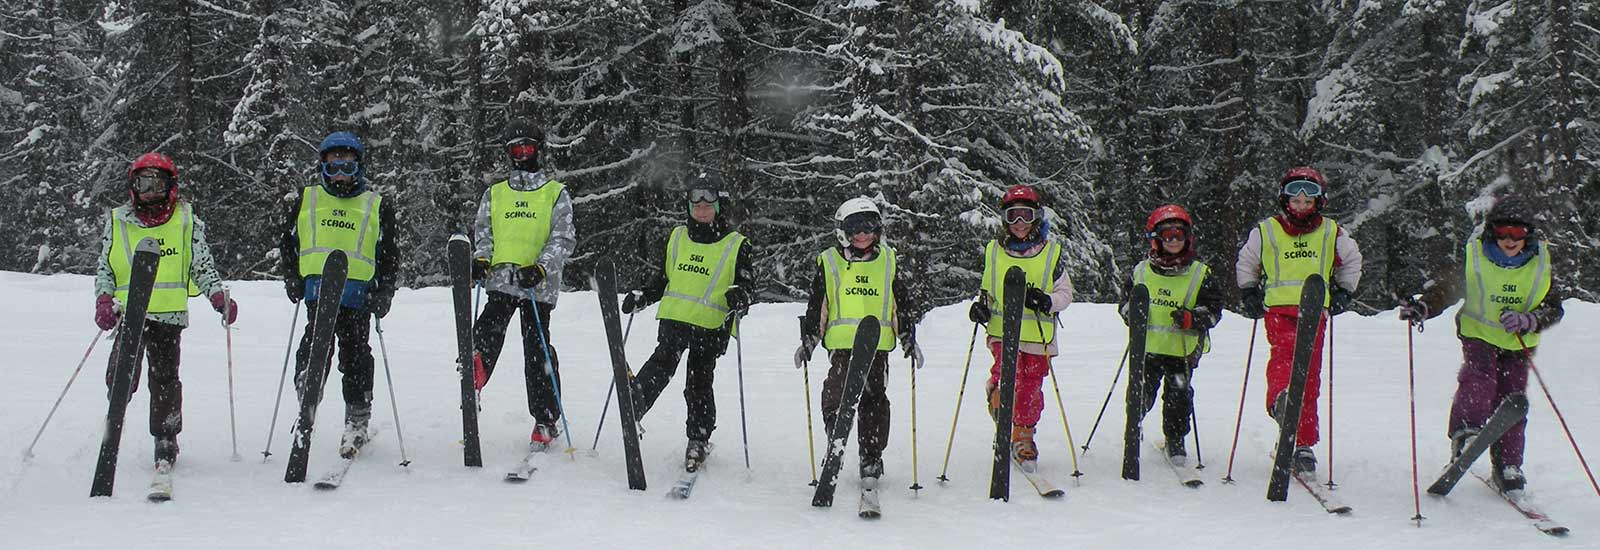 Ski school for children - Bansko Ski Mania